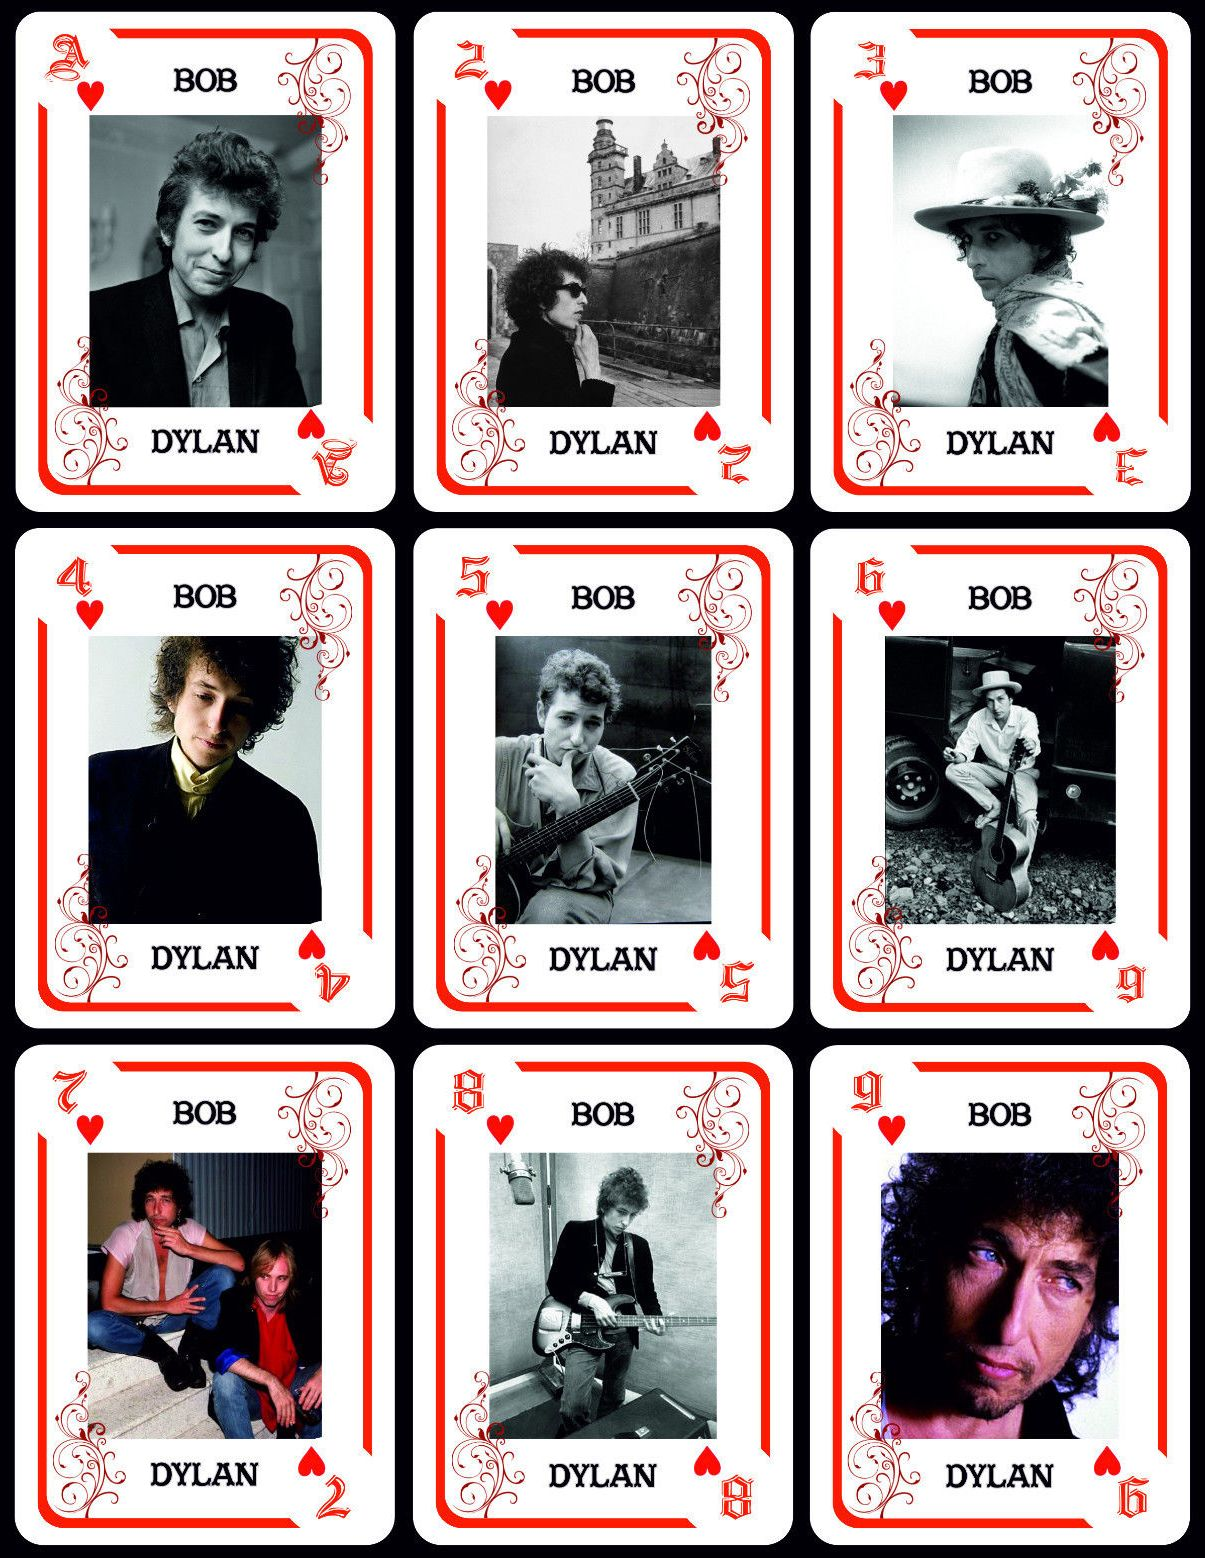 bob dylan playing cards argentina #2